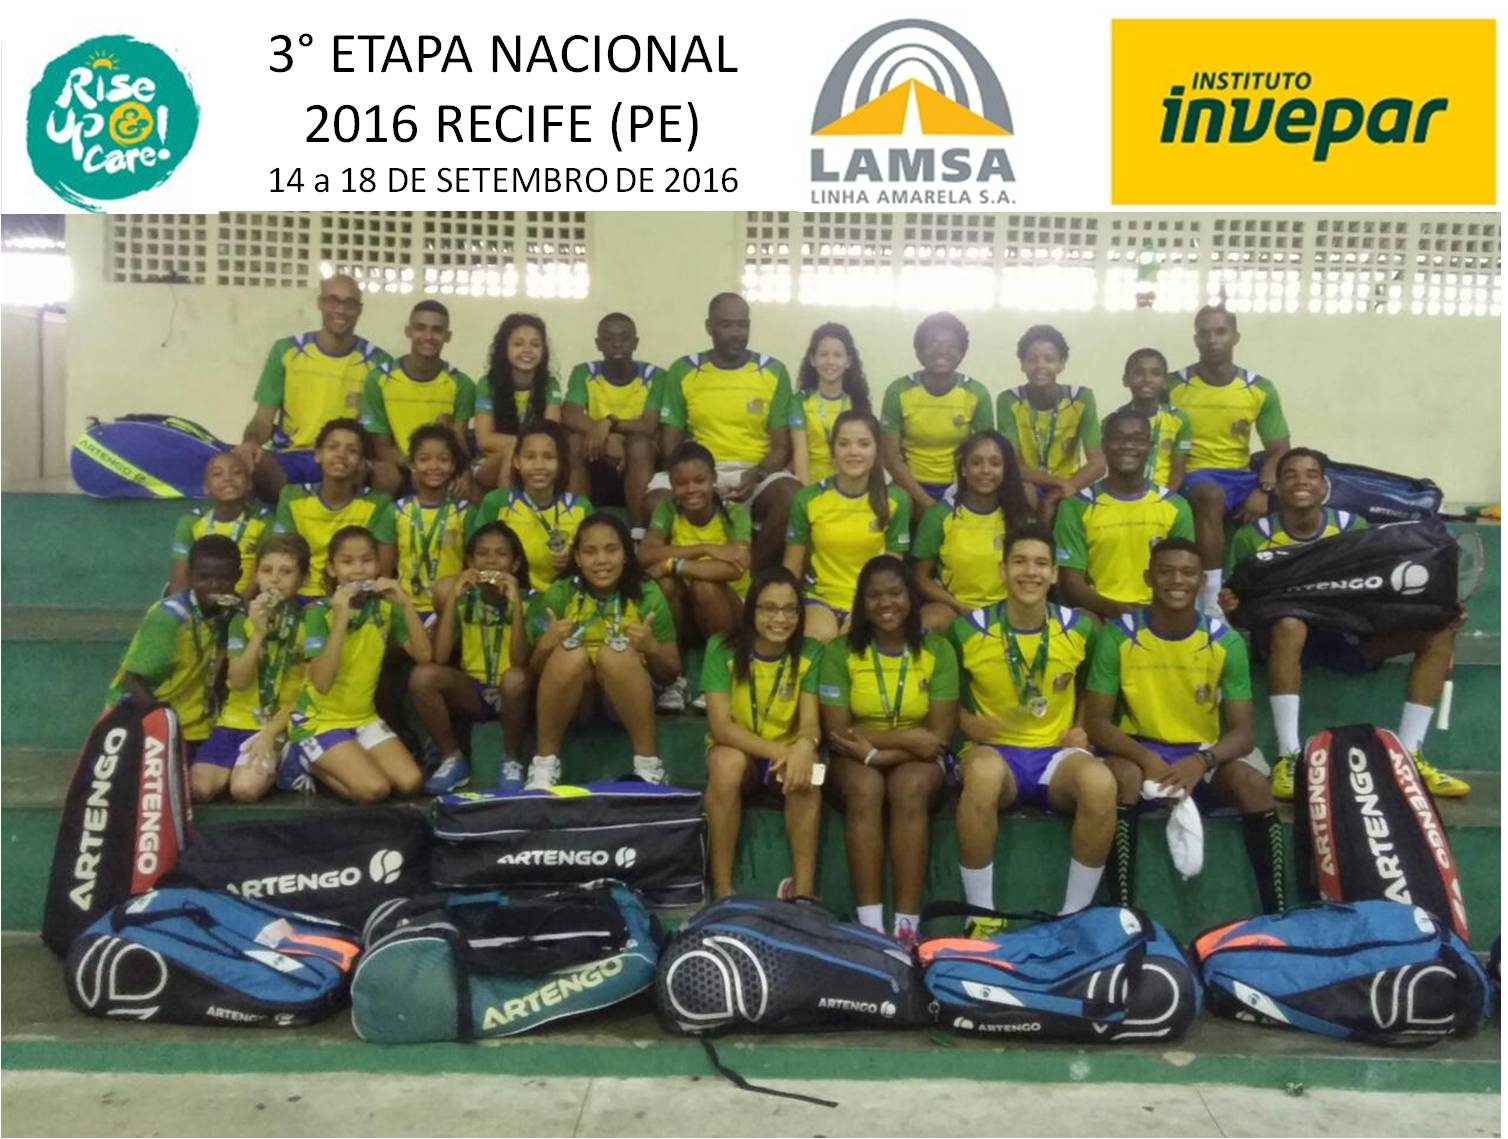 18/09/16: Show time for Miratus at III National Championship in Recife !